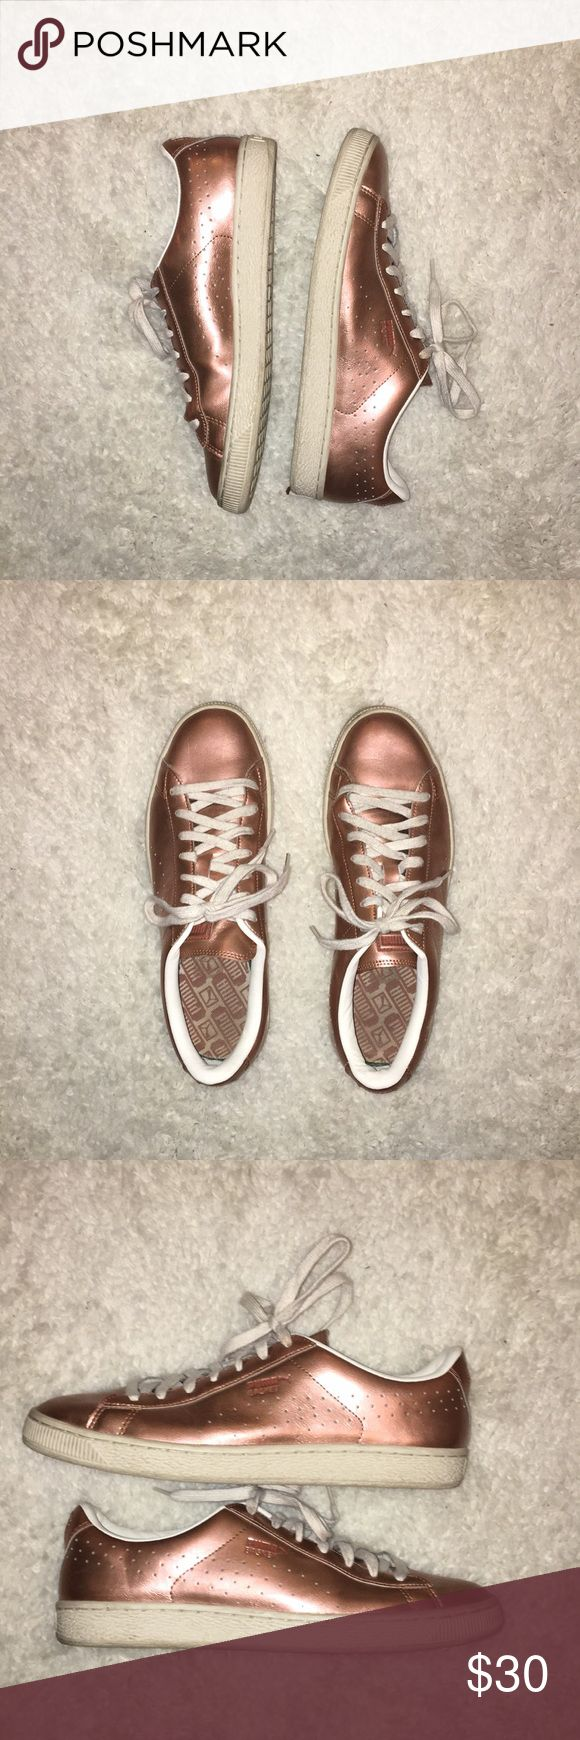 PUMA Basket tennis shoes Lightly worn tennis shoes by PUMA. Awesome rose gold coloring. Great condition. Size 10. Puma Shoes Athletic Shoes #tennisshoes